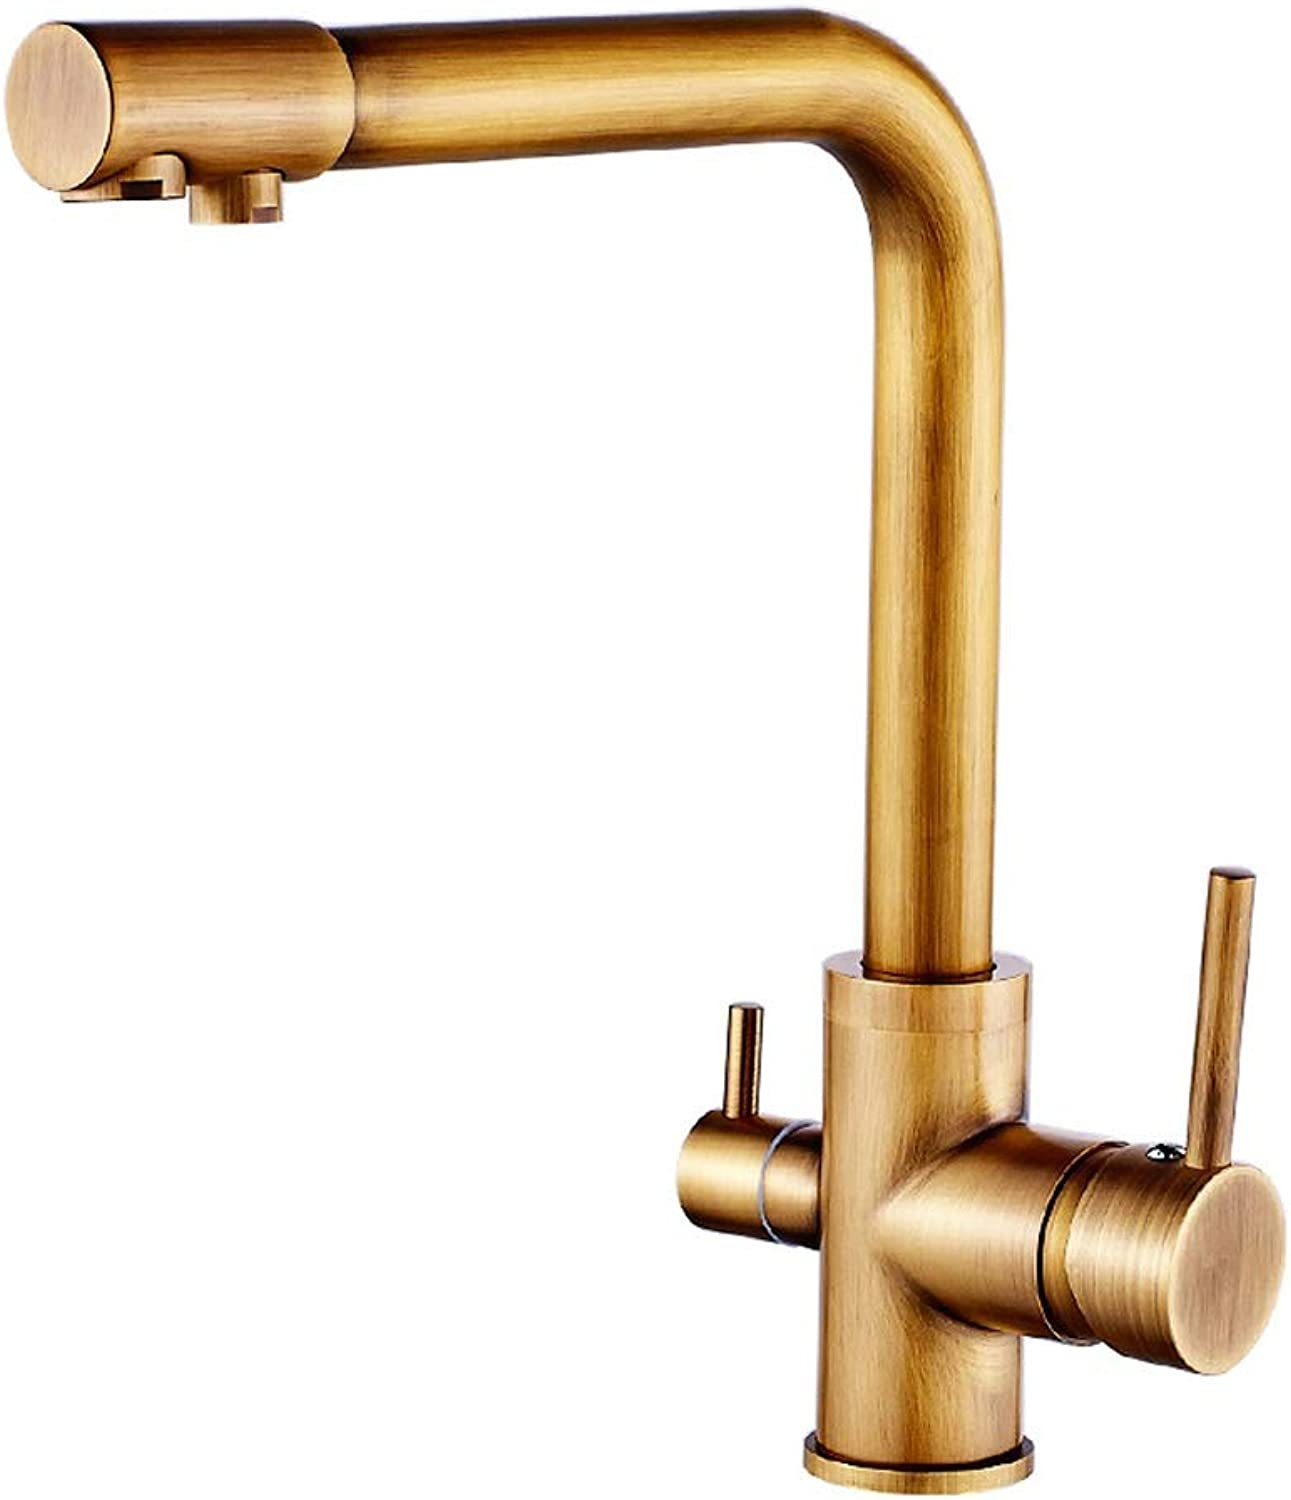 AXWT All Bronze High End Taps Antique Copper Dual Use Double Open Pure Water Purifier Water-tap Double Head Kitchen Faucet Sink Vegetable Pot Hot And Cold Mixed Water 360°